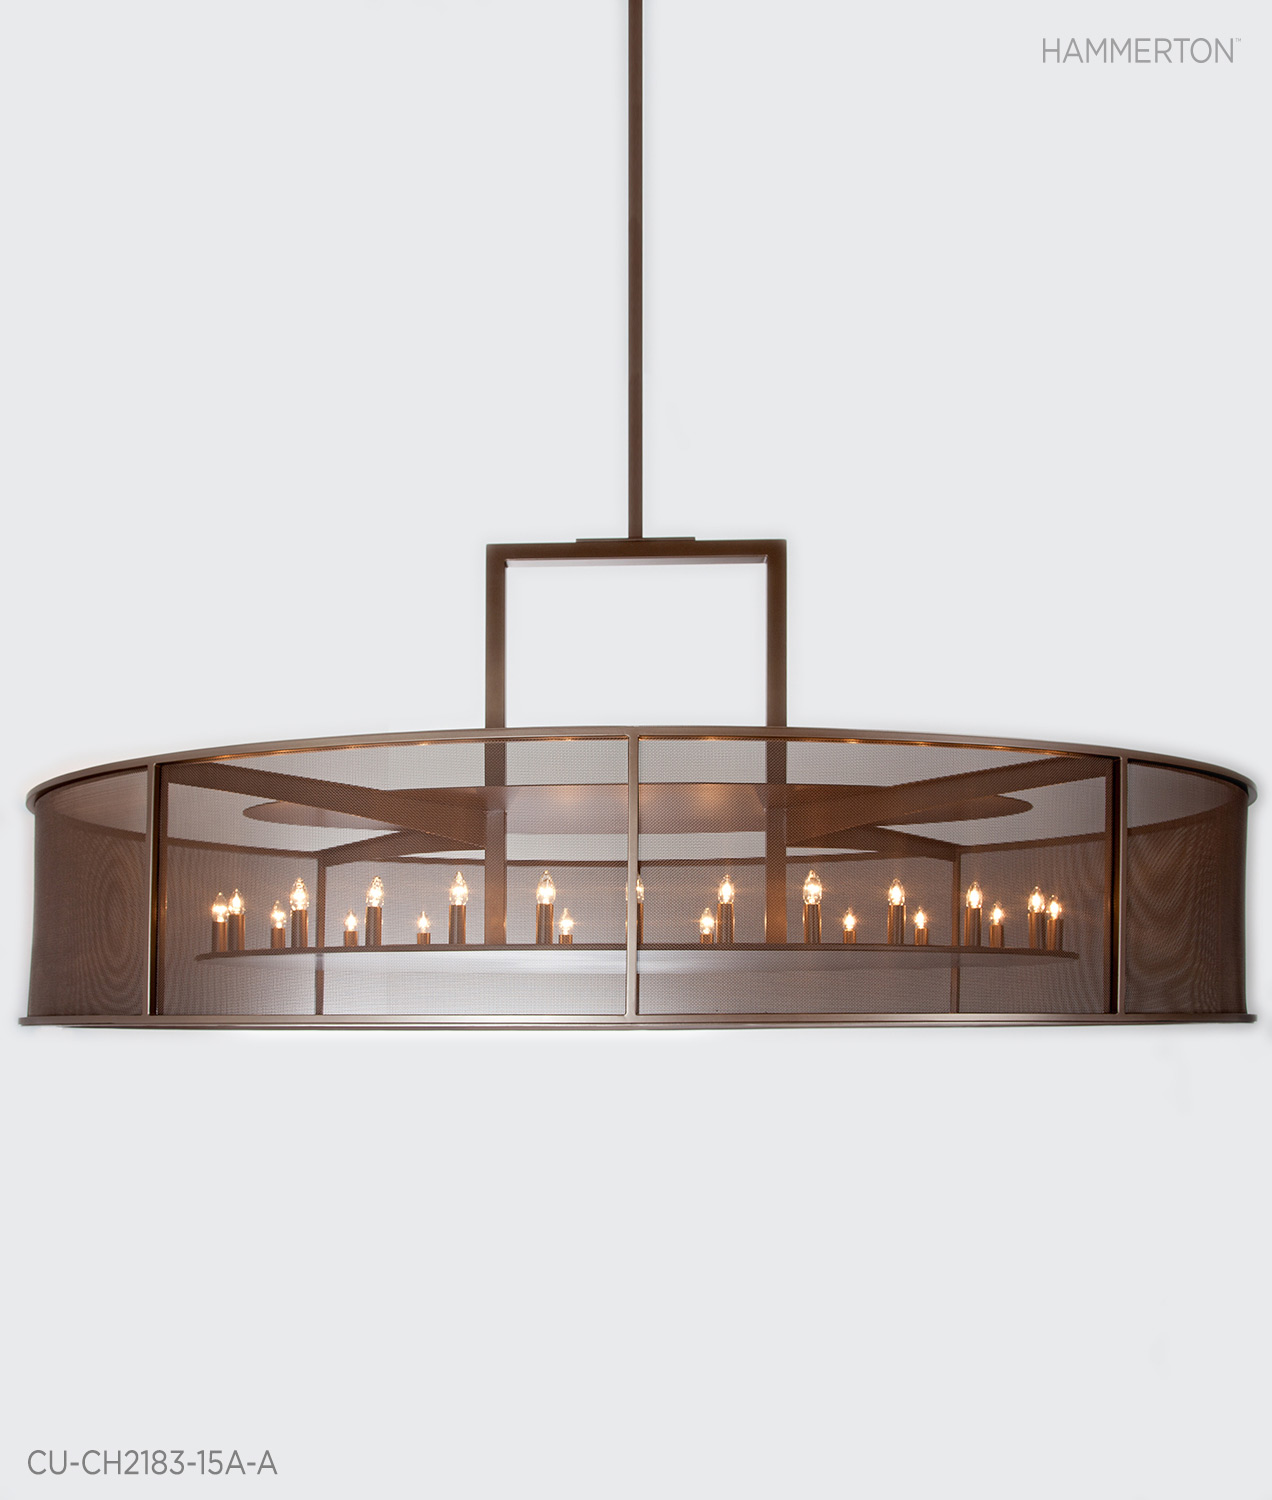 Fine Mesh and 24 exposed candelabra bulbs make a statement with this enormous 10 ft wide contemporary chandelier. Tempered Bronze Metallic Finish. Designed for Ocean Reef Club,Florida.  Fixture:  CU-CH2183-15A-A